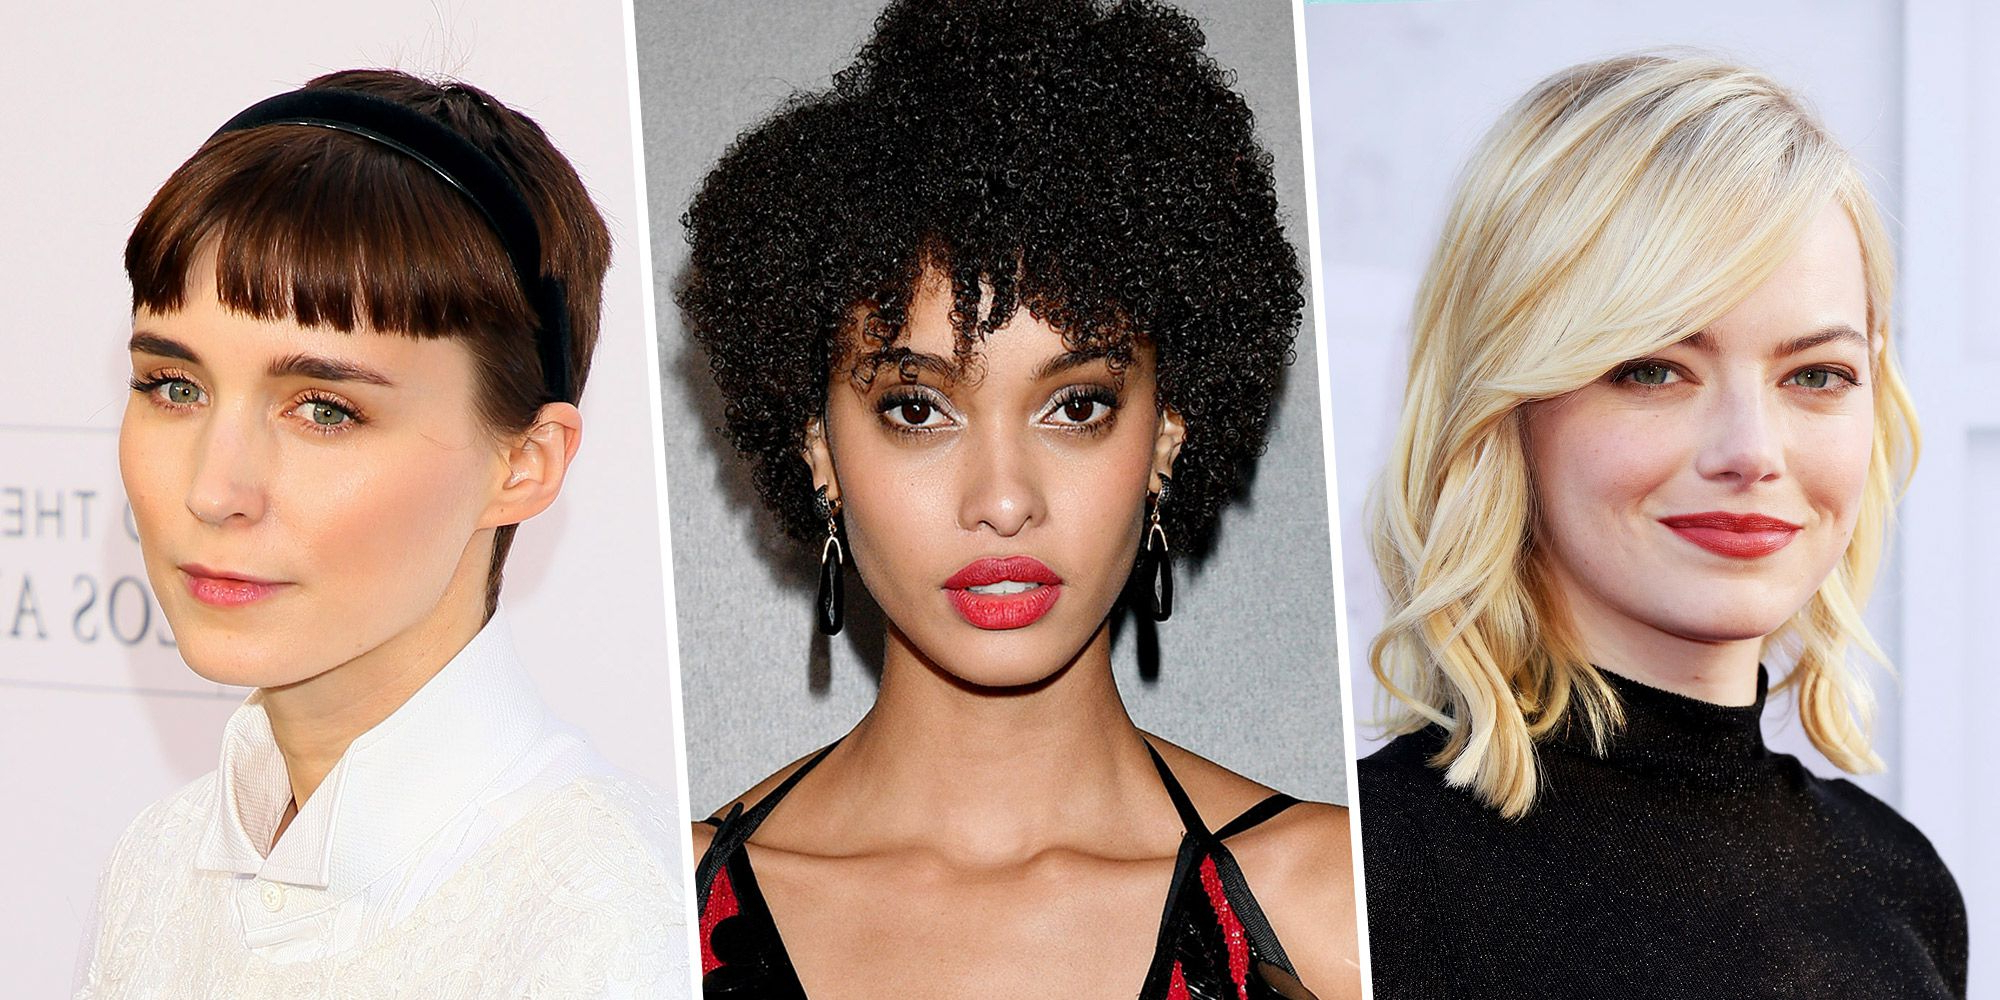 65 Best Short Hairstyles, Haircuts, And Short Hair Ideas For 2018 Within Cute Hairstyles For Shorter Hair (Gallery 20 of 25)